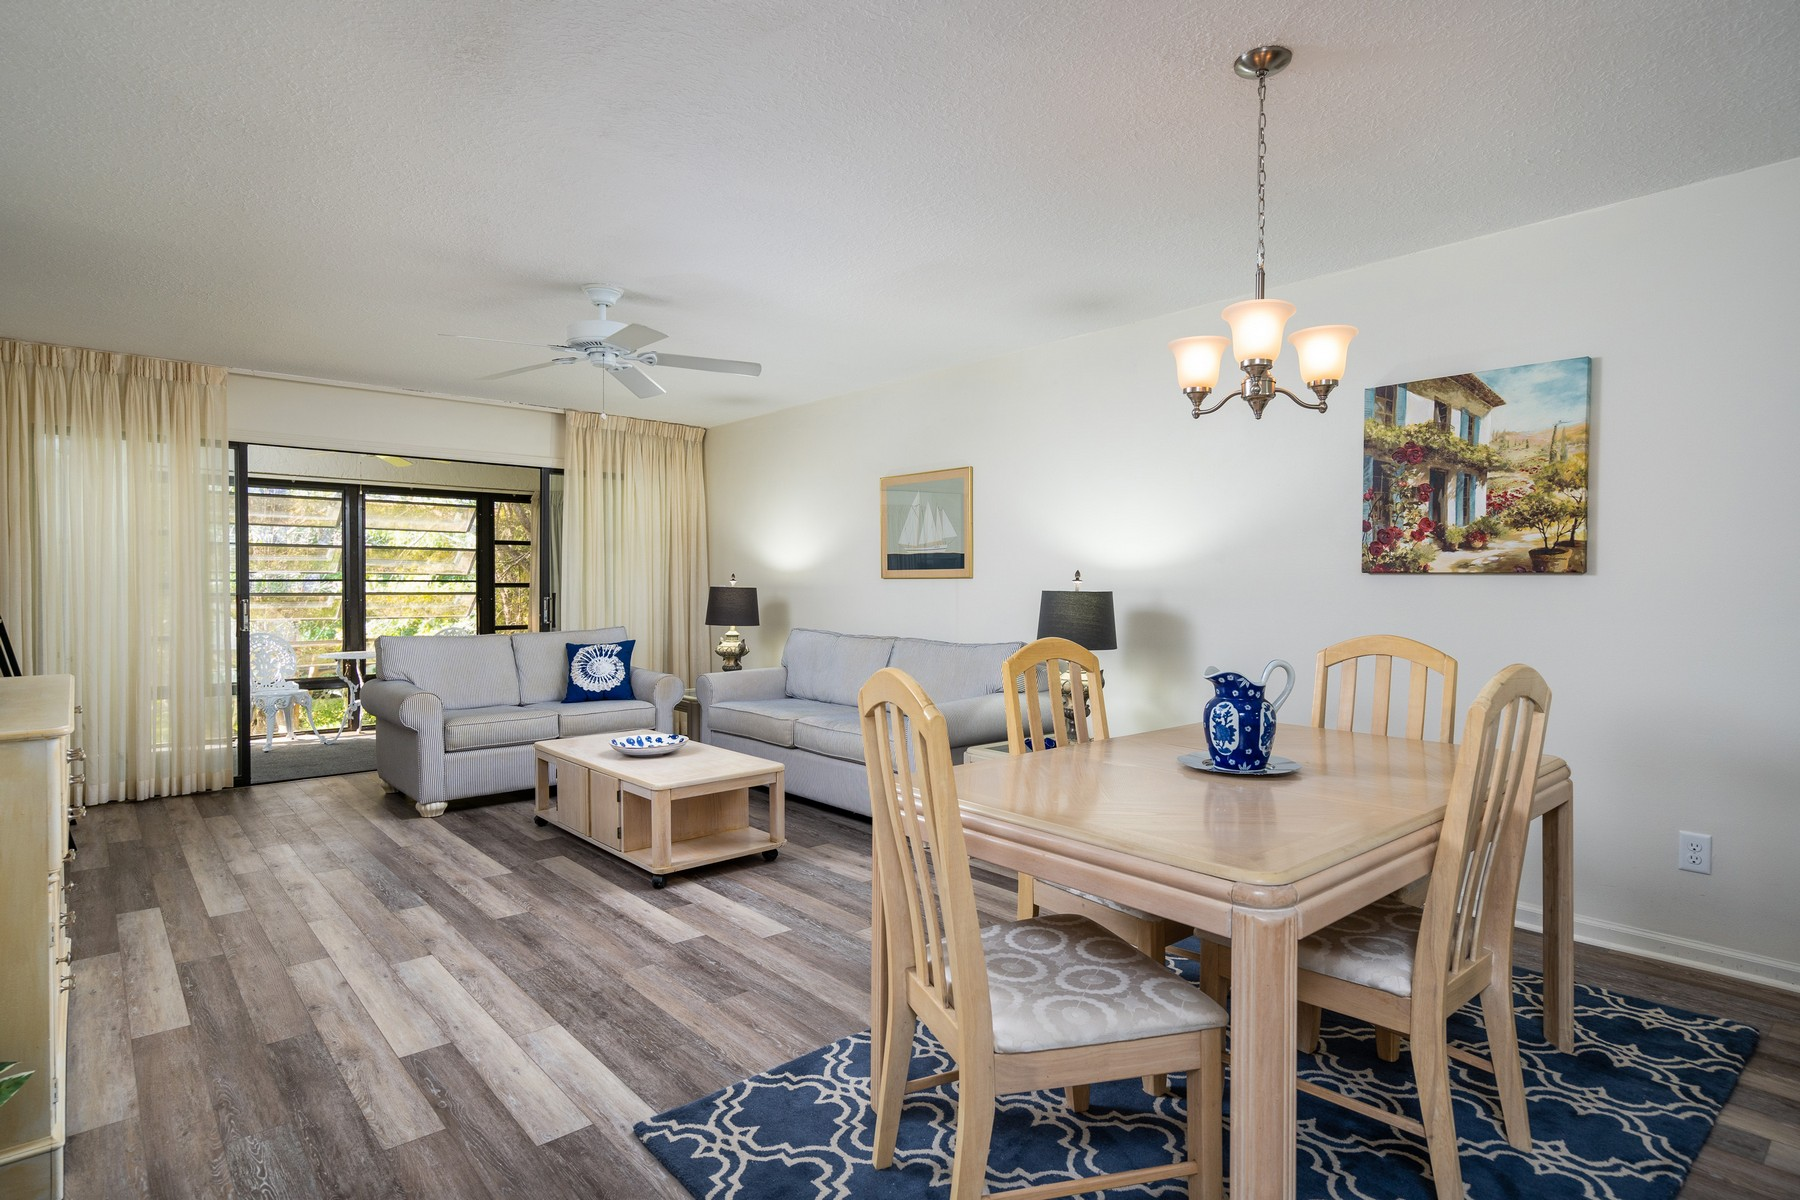 Condominium for Sale at Beautifully Renovated Corner Unit 400 18th Street #M-5 Vero Beach, Florida 32960 United States